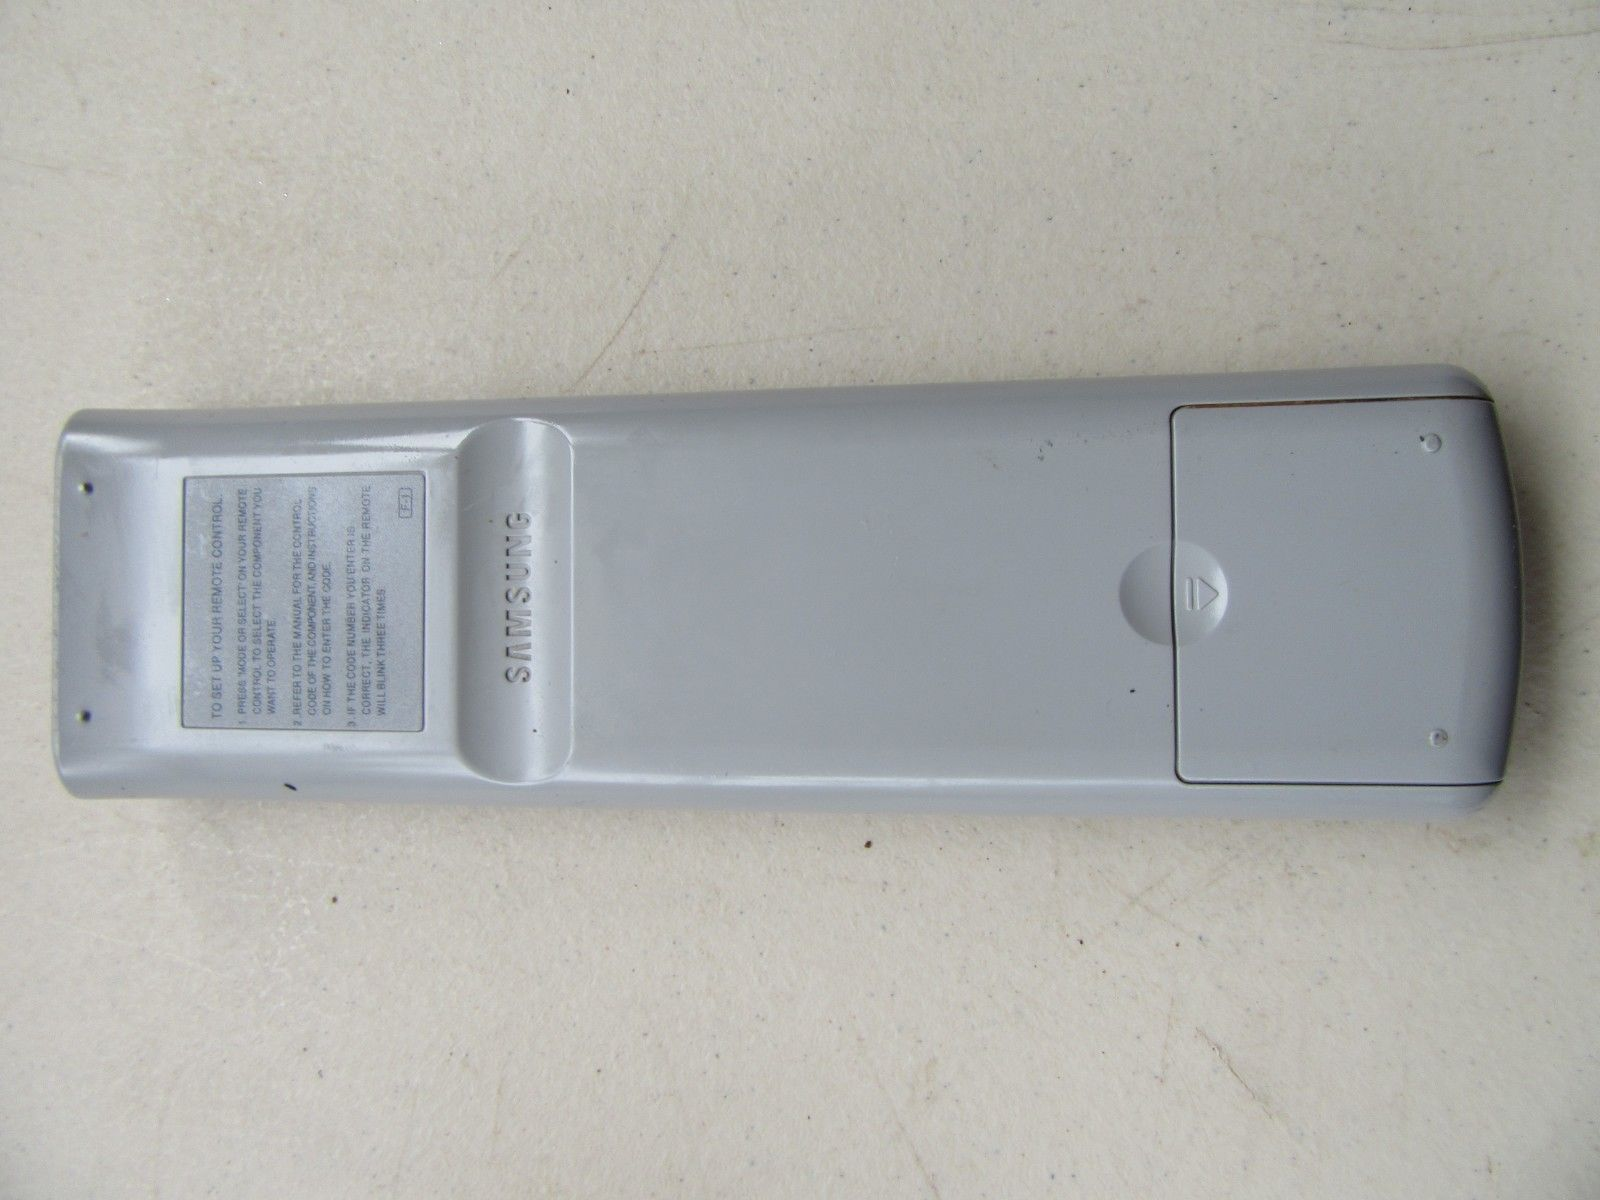 Samsung TV Remote Control AA64-03560A and 18 similar items